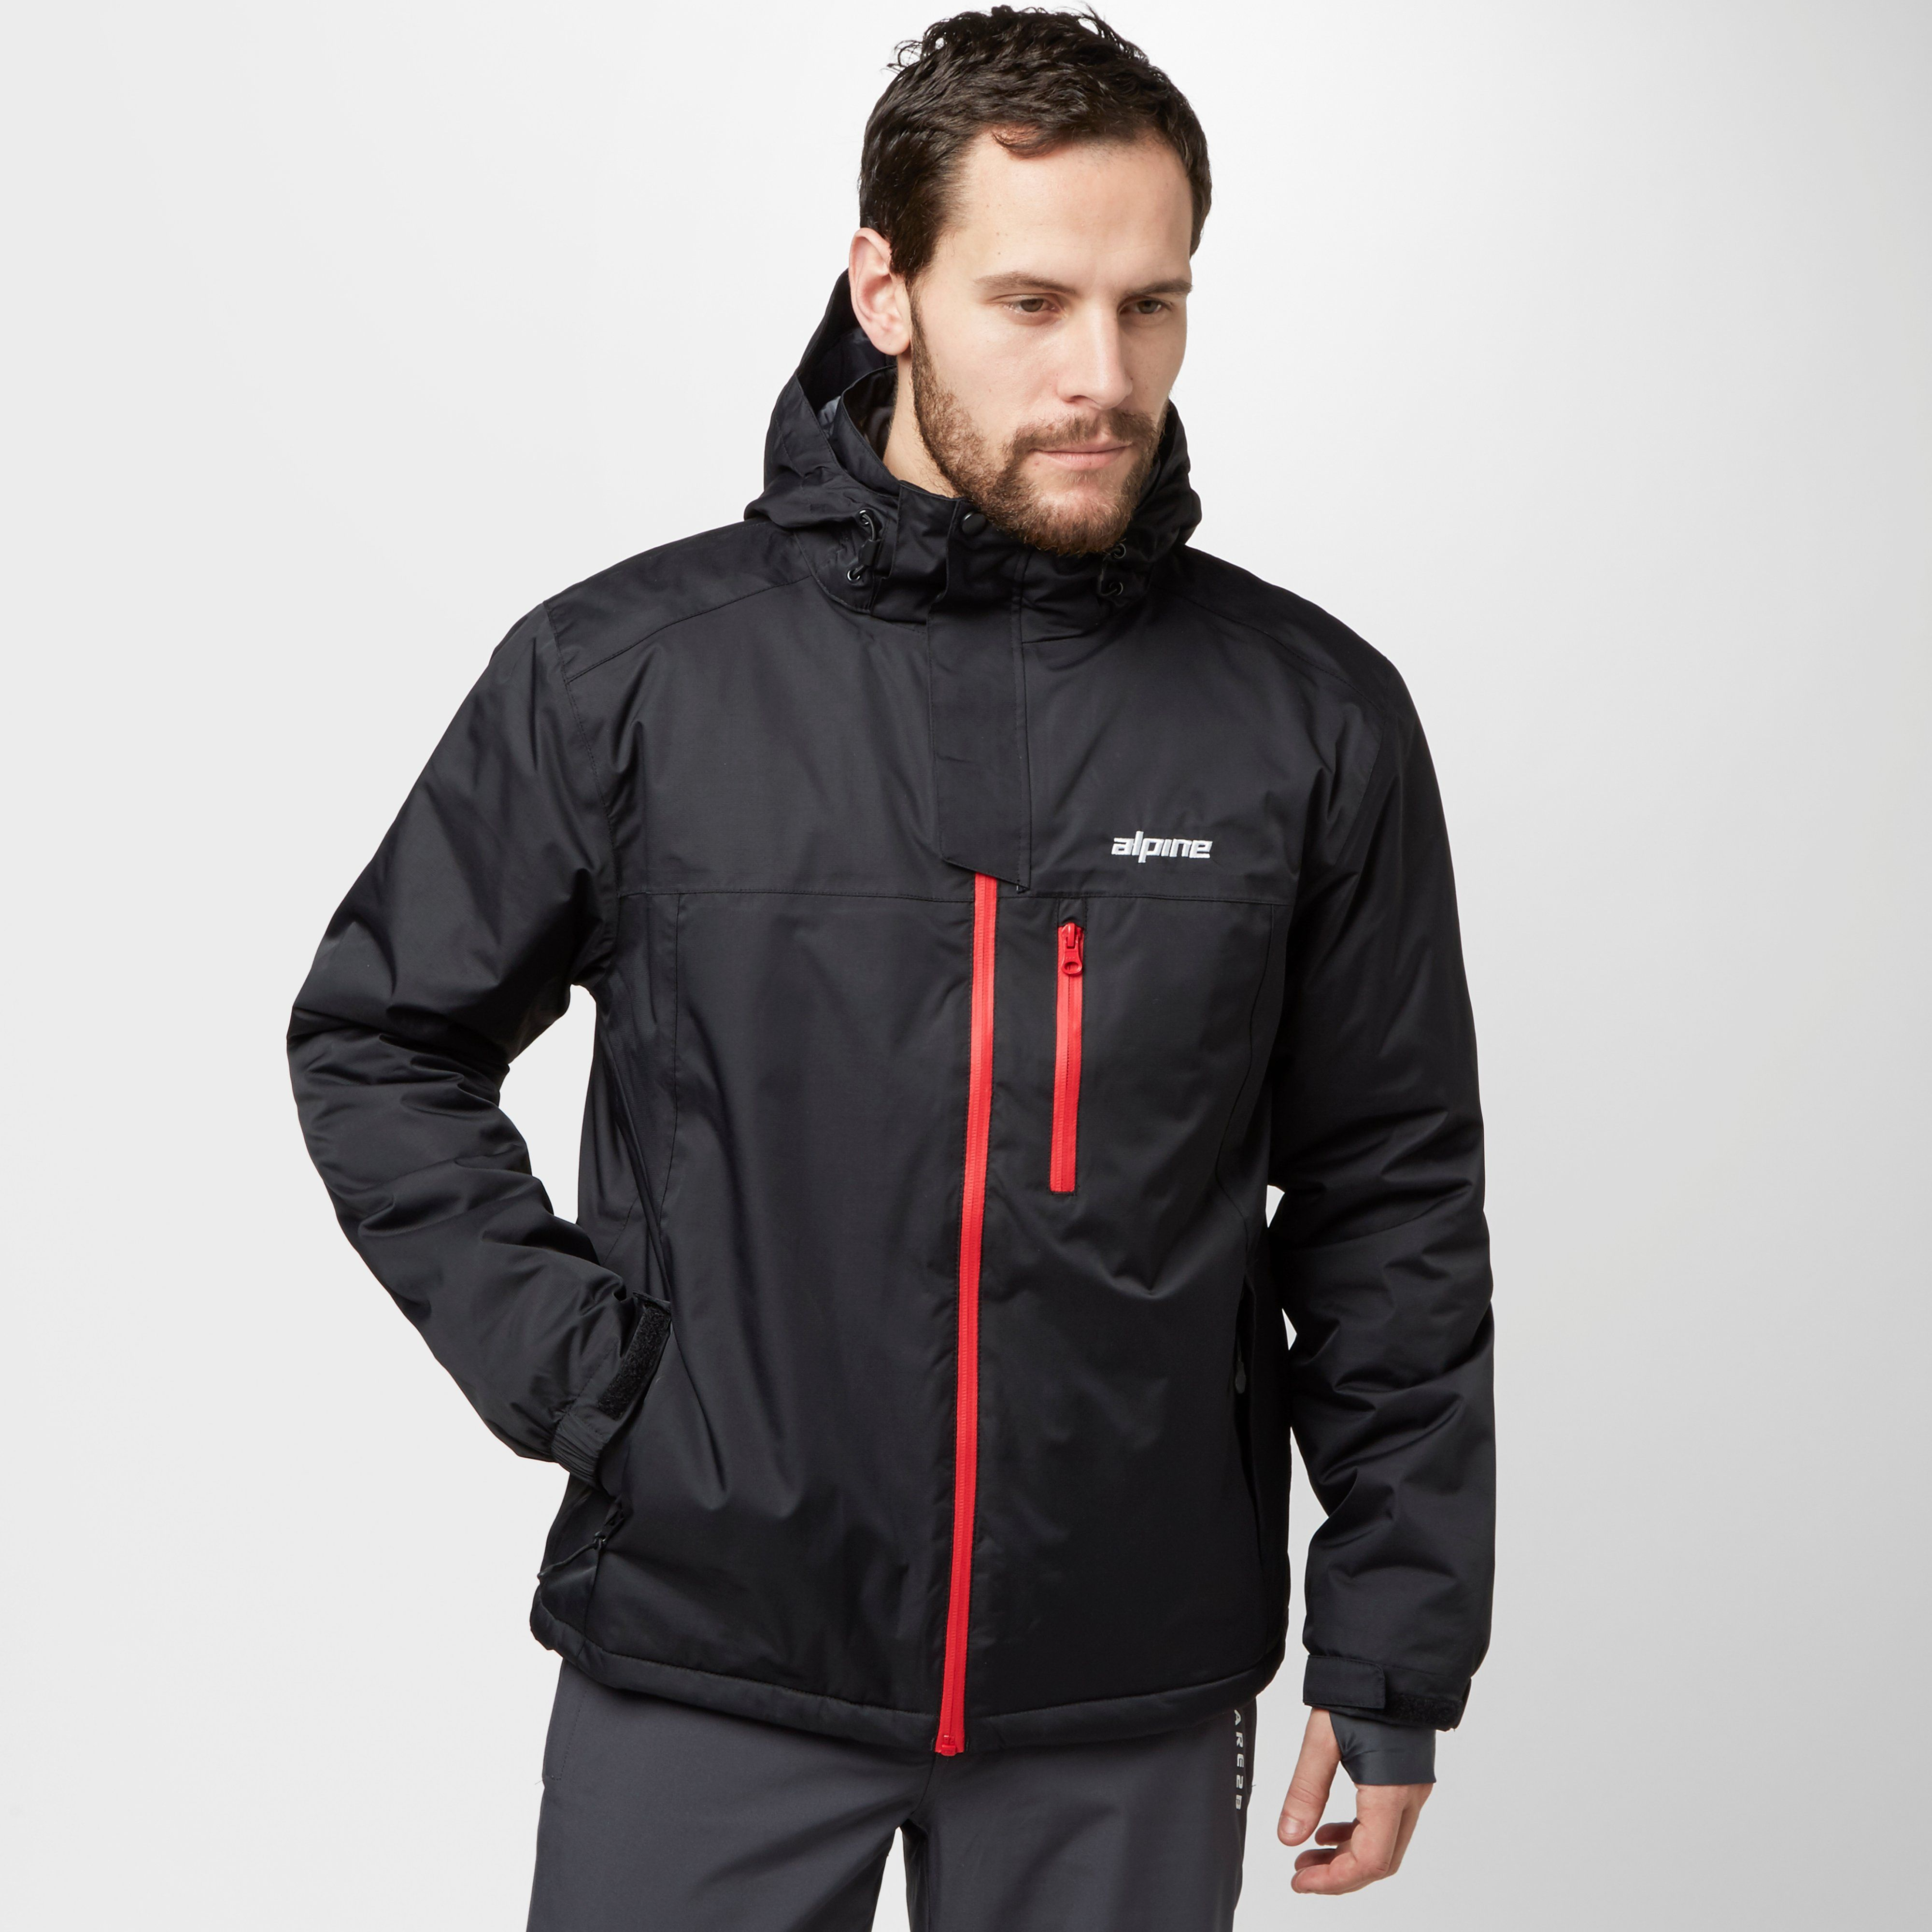 ALPINE Men's Meribel Ski Jacket